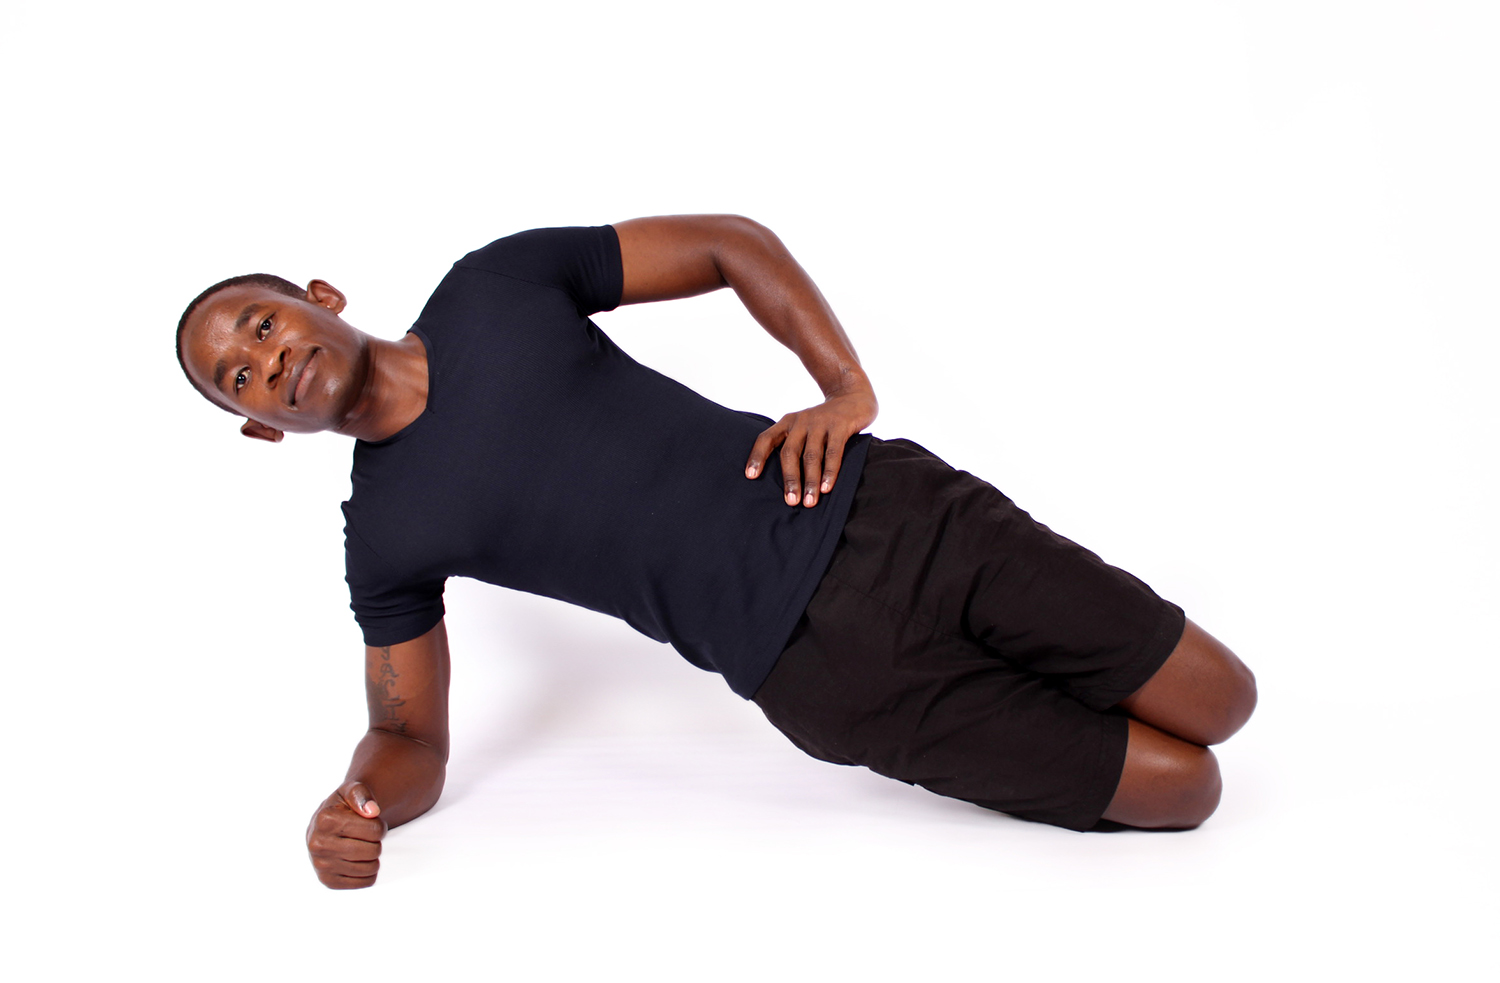 Black man doing beginner knee side plank